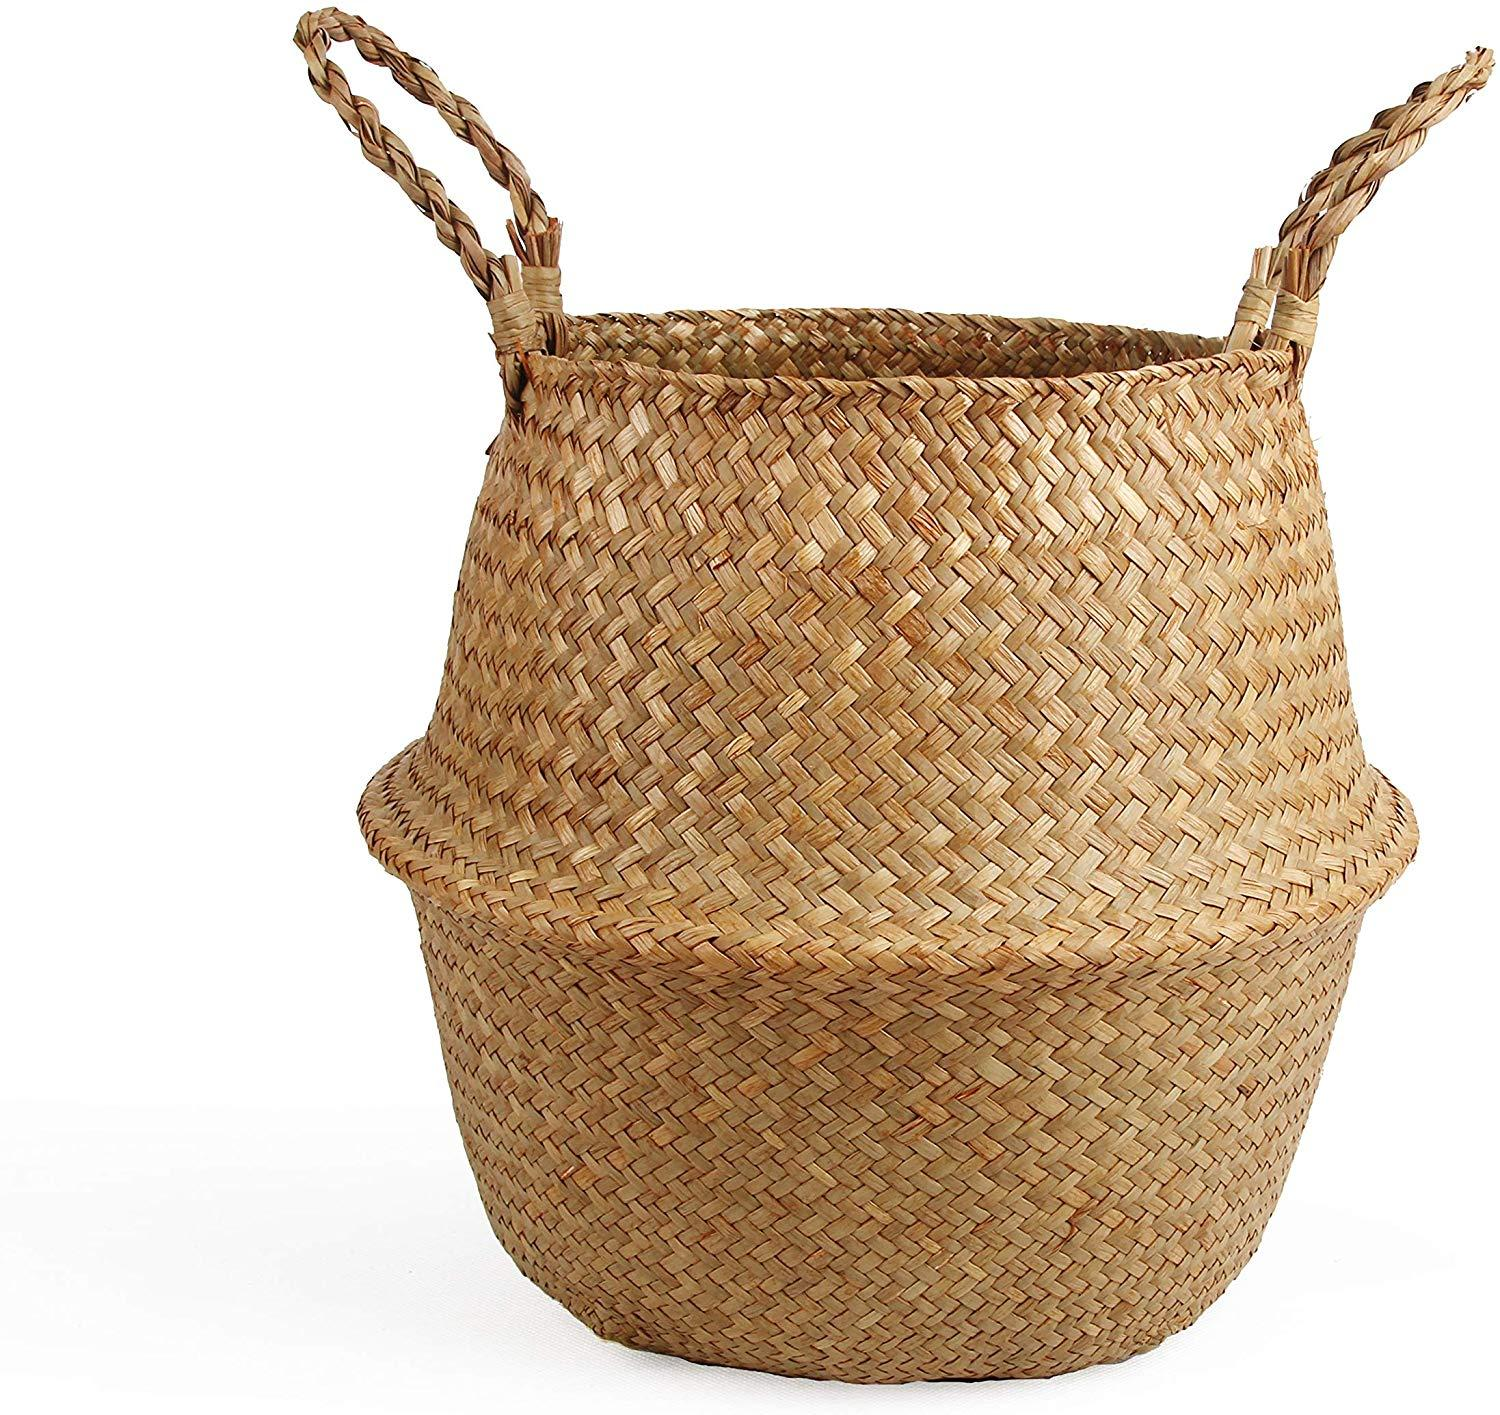 small oval willow basket for gift giving storage.htm 2020 woven seagrass belly basket for storage plant pot basket  woven seagrass belly basket for storage